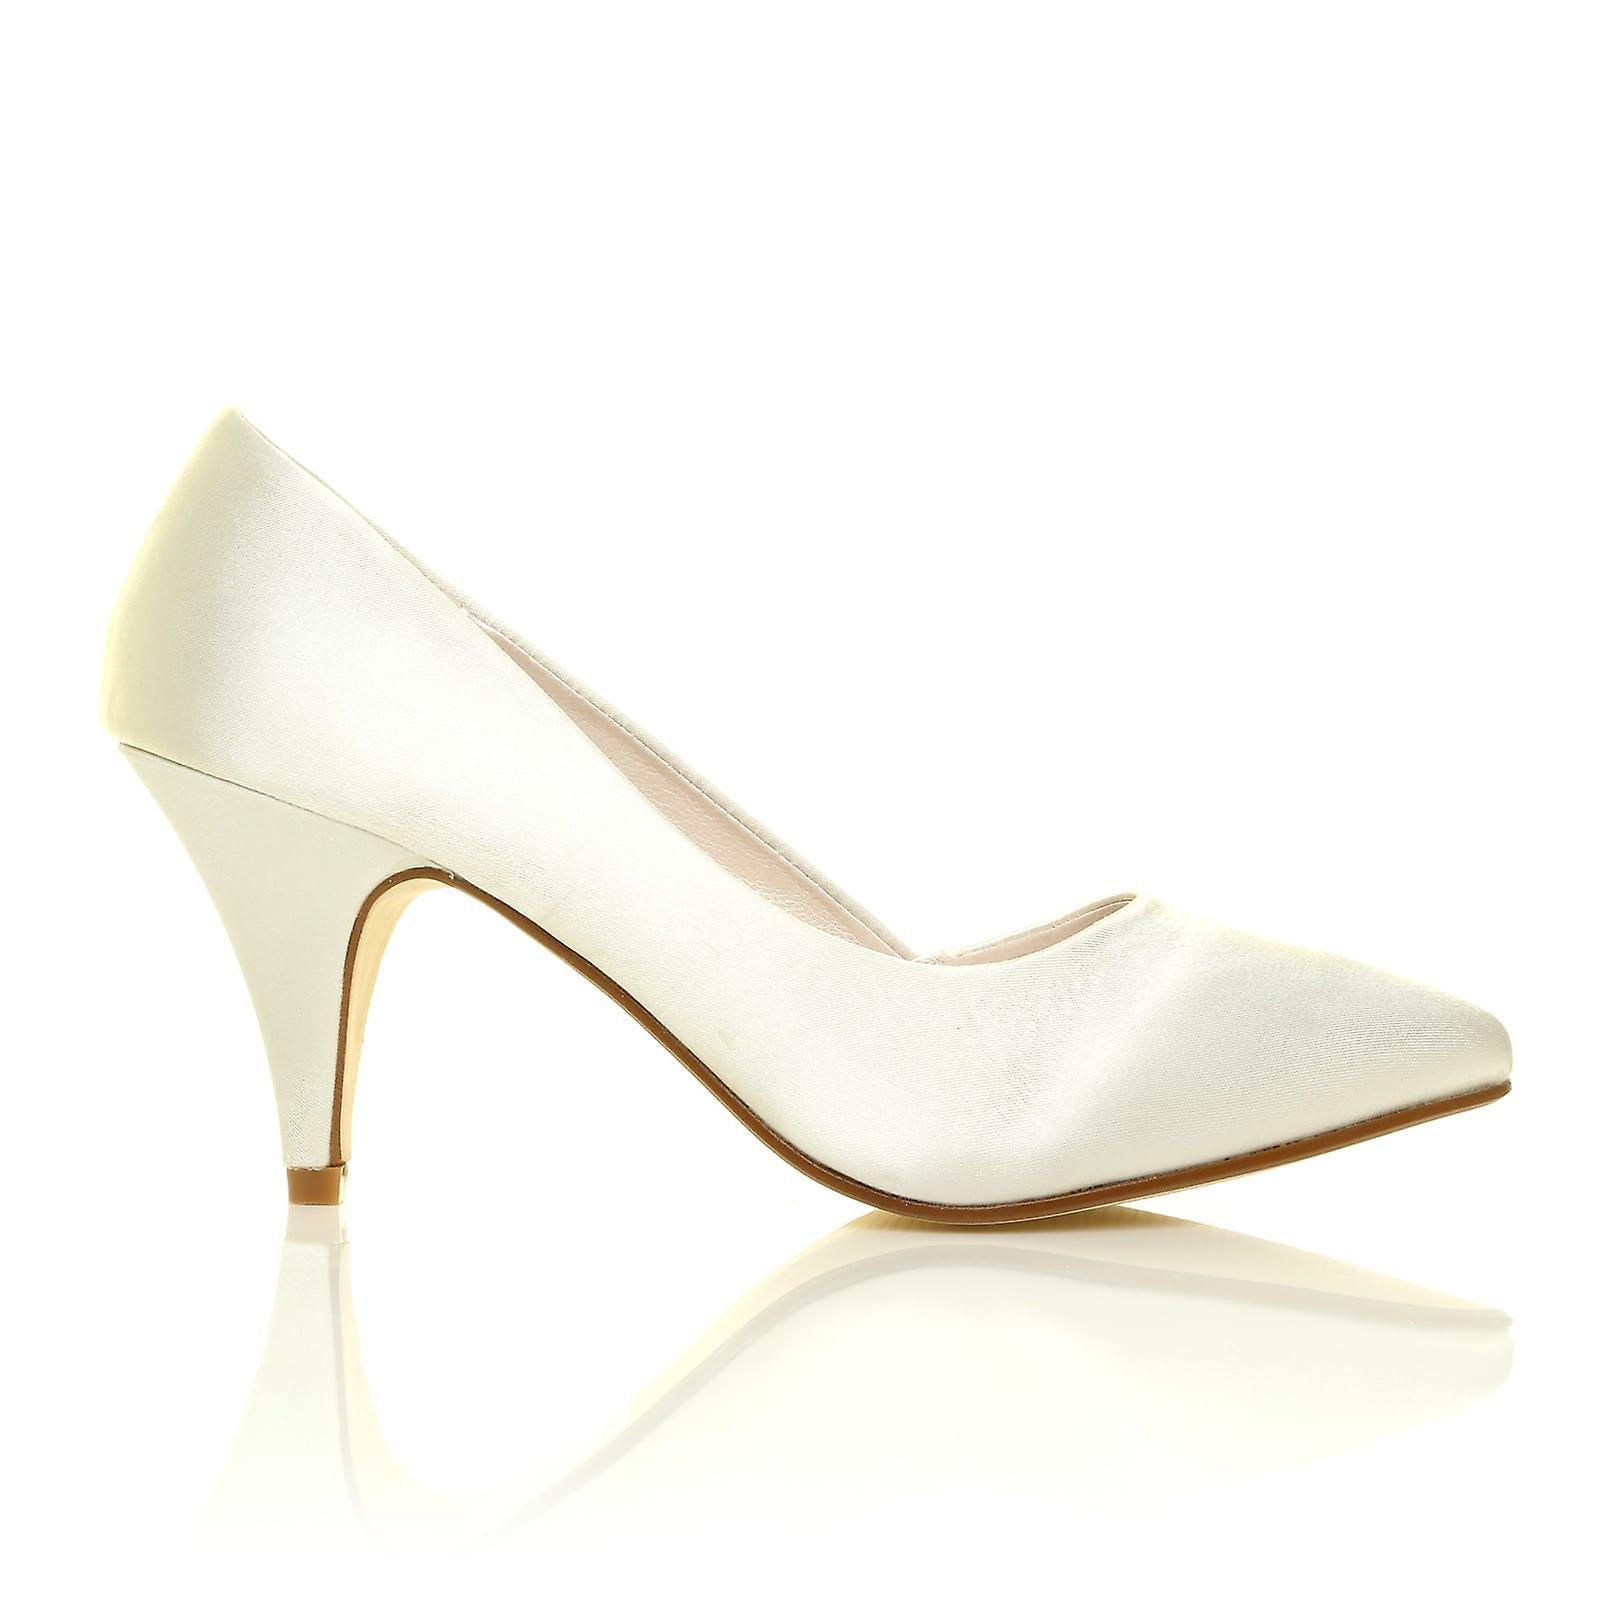 HOPE Ivory Bridal Satin Mid Heel Pointed Bridal Ivory Shoes 0f85ca